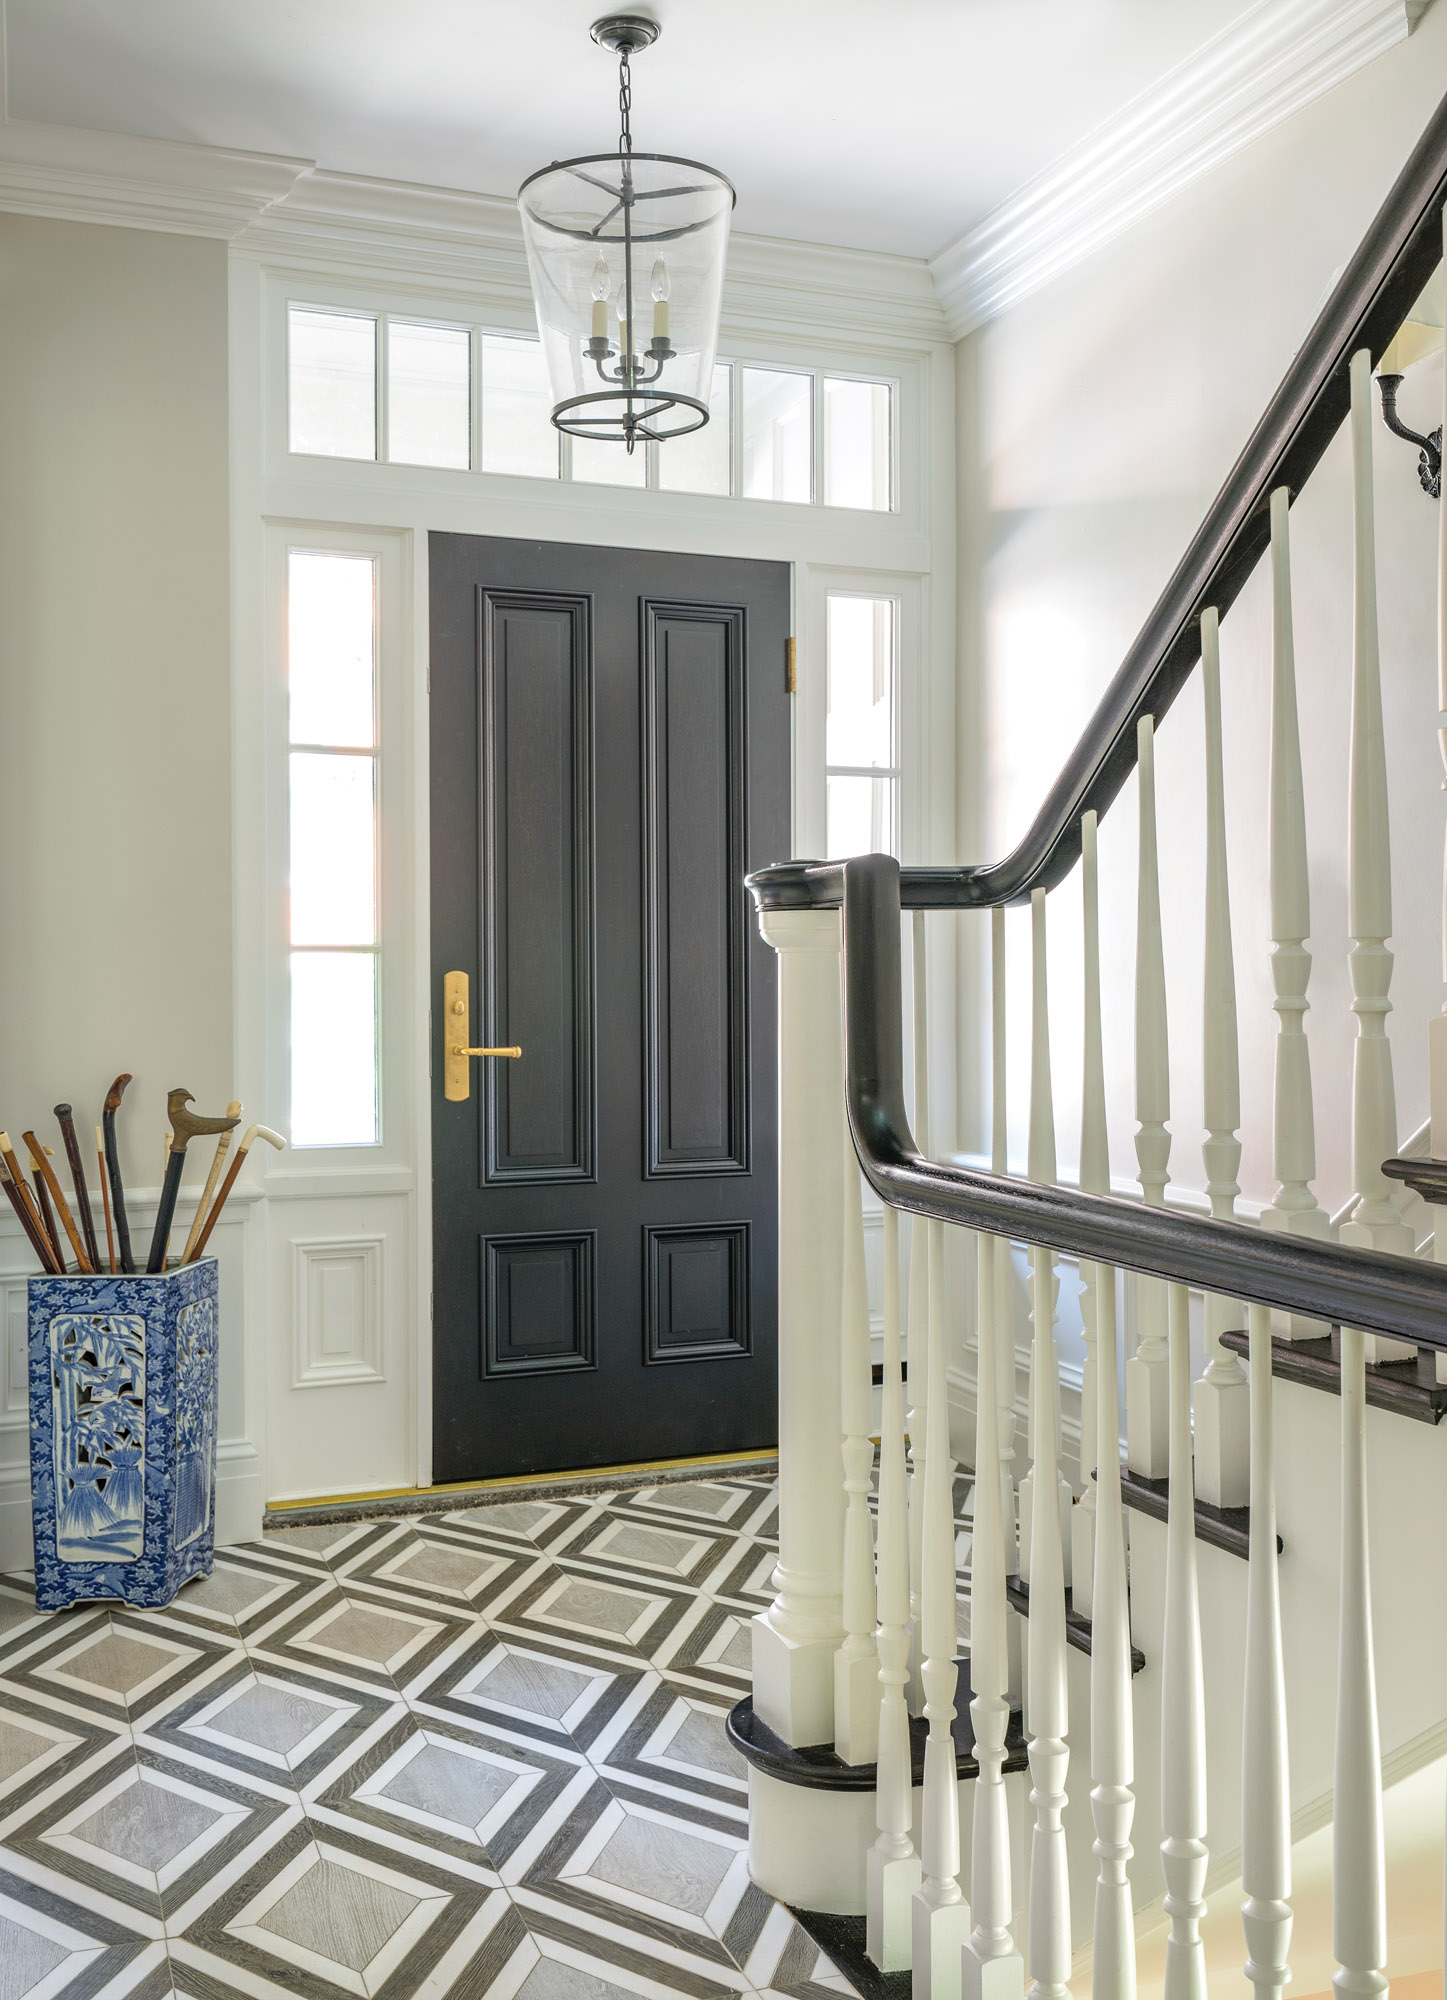 Greek Revival sidelights and transom